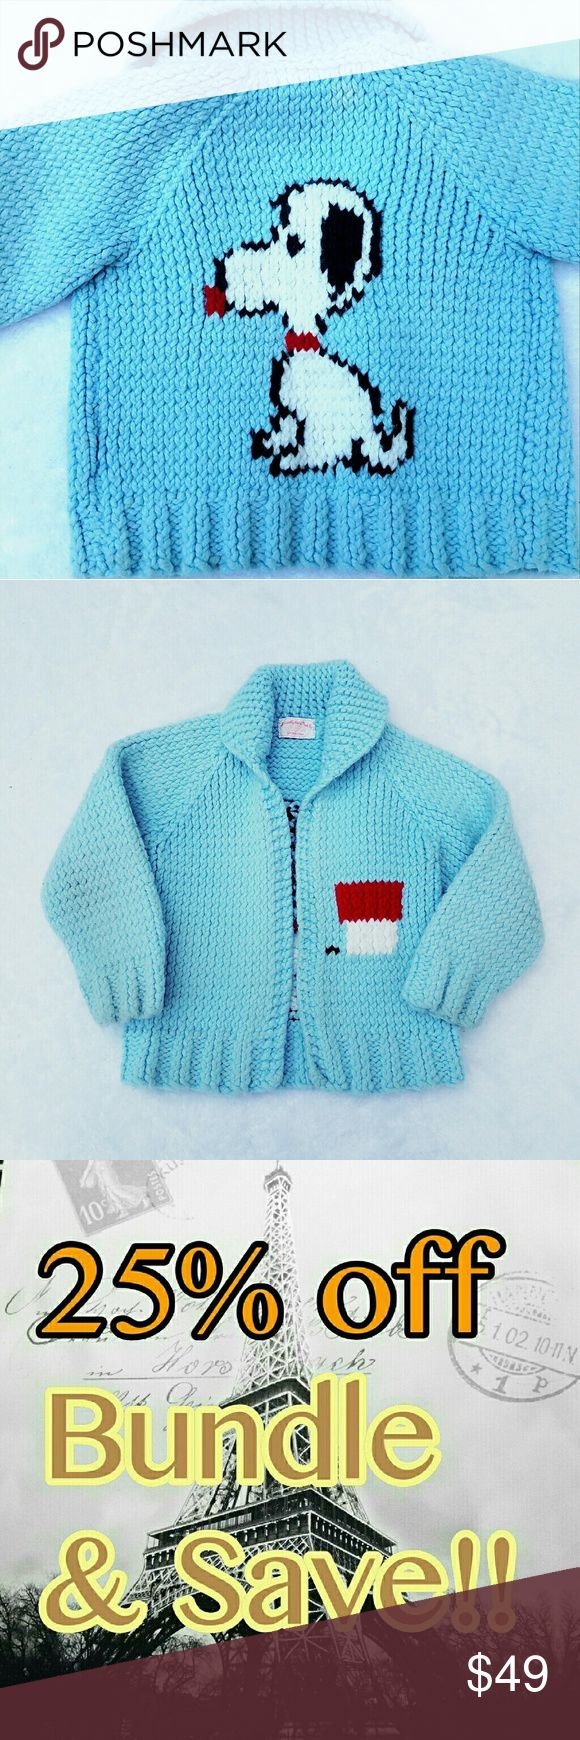 Vintage Snoopy  Blue little girls cardigan size 2T Vintage Snoopy  Blue little girls cardigan size 2T ladies this is super rare and a hard find my price on this item is firm although I do still offer my 25% off bundle discount but no offers from the offer button on this item thank you for understanding Shirts & Tops Sweaters